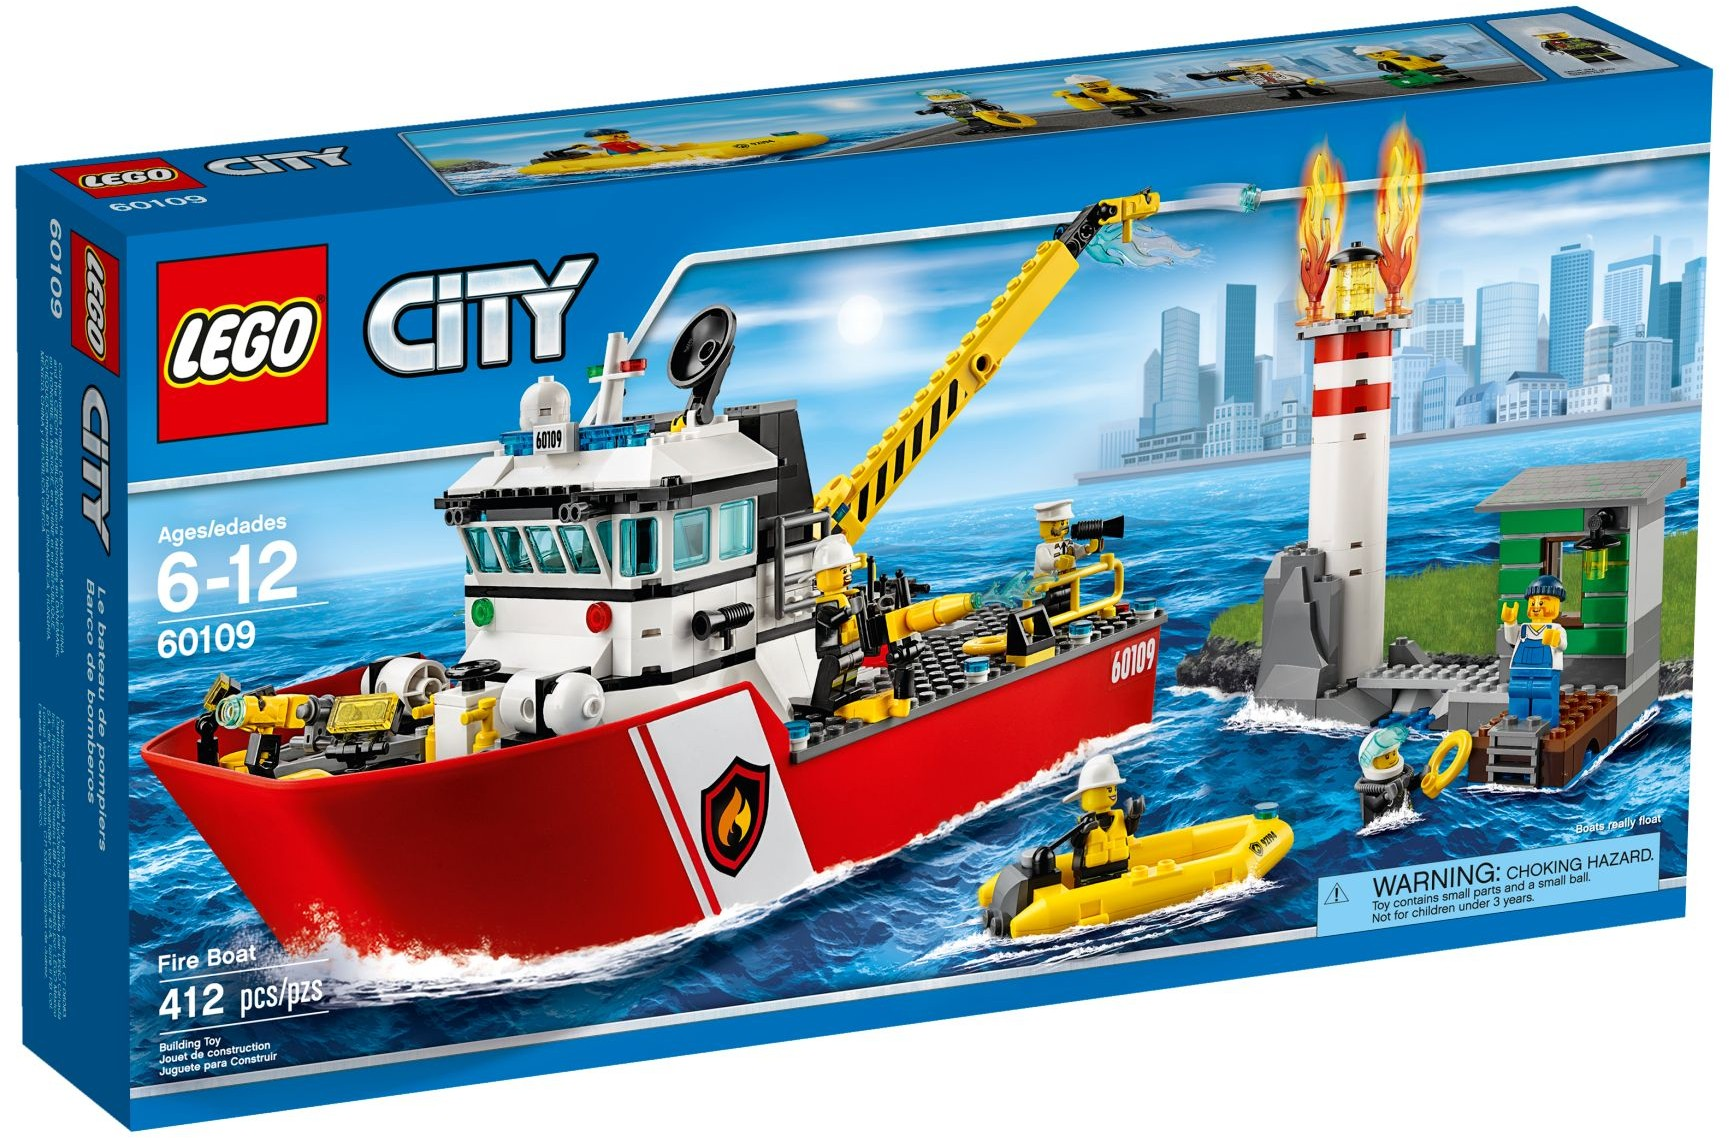 lego city 60109 pas cher le bateau de pompiers. Black Bedroom Furniture Sets. Home Design Ideas